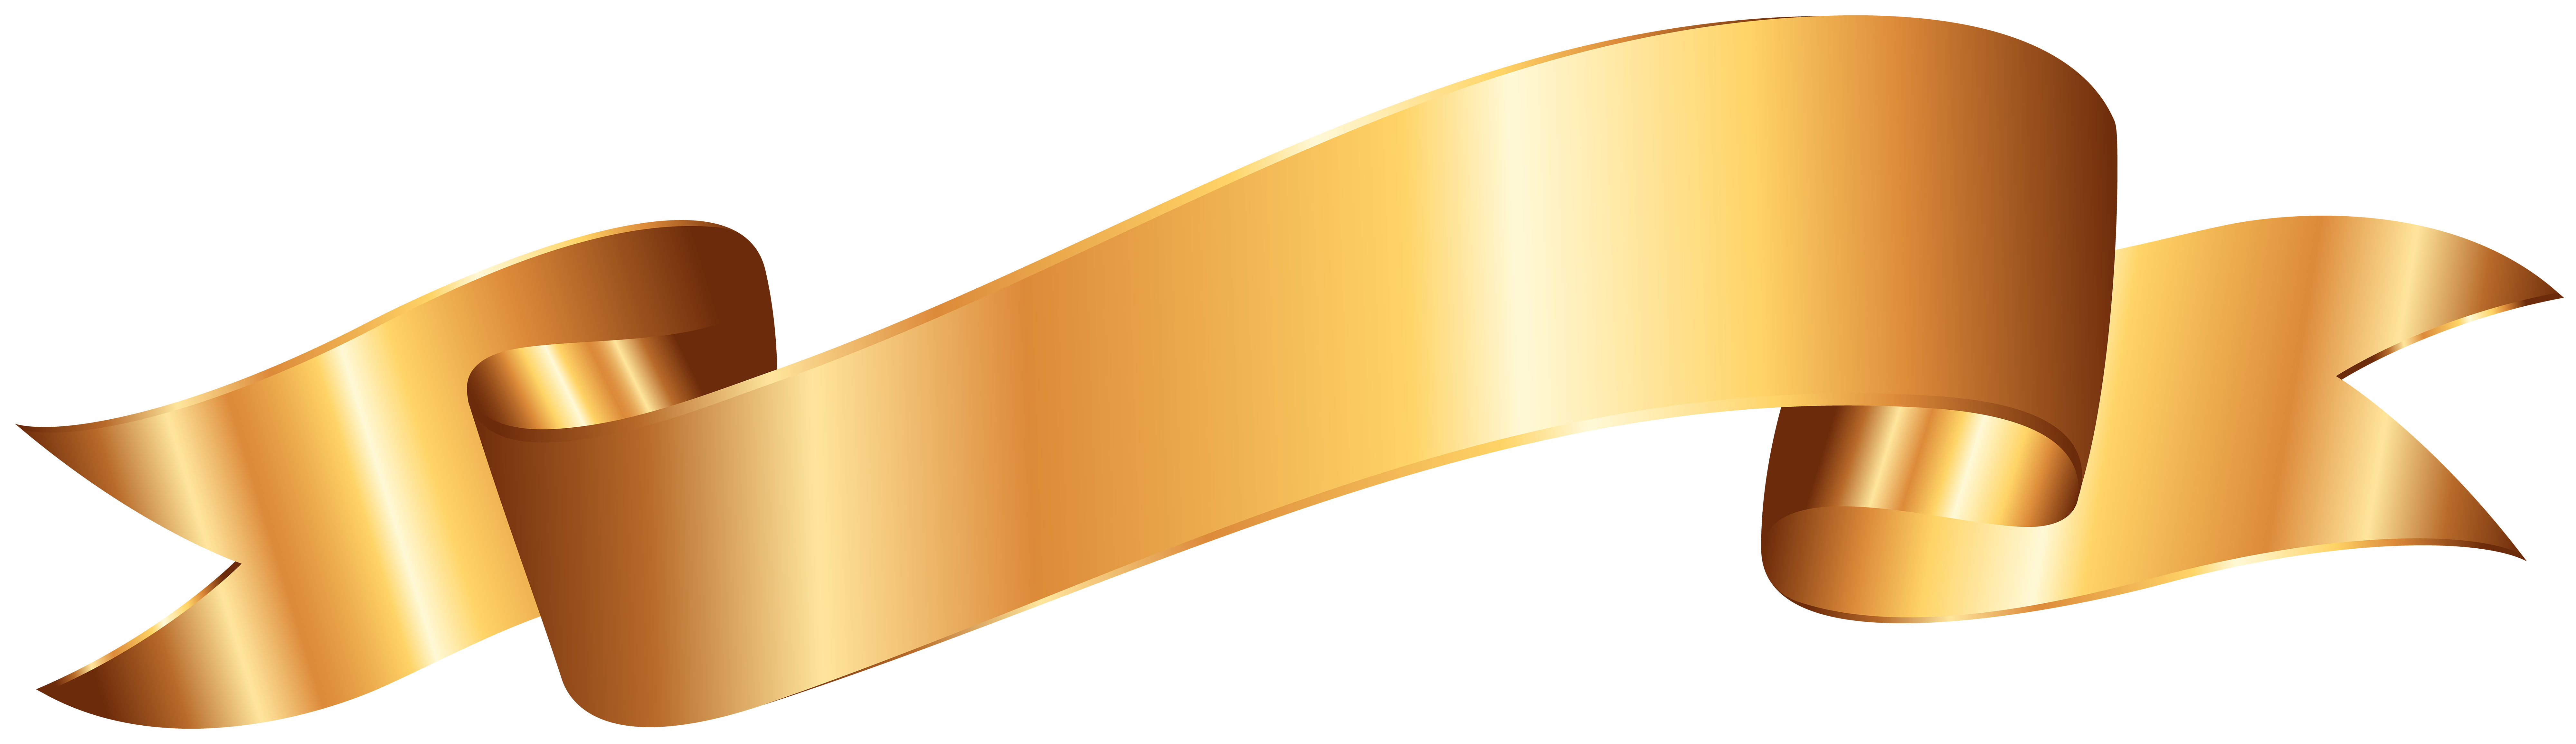 Gold banner png. Clip art image gallery